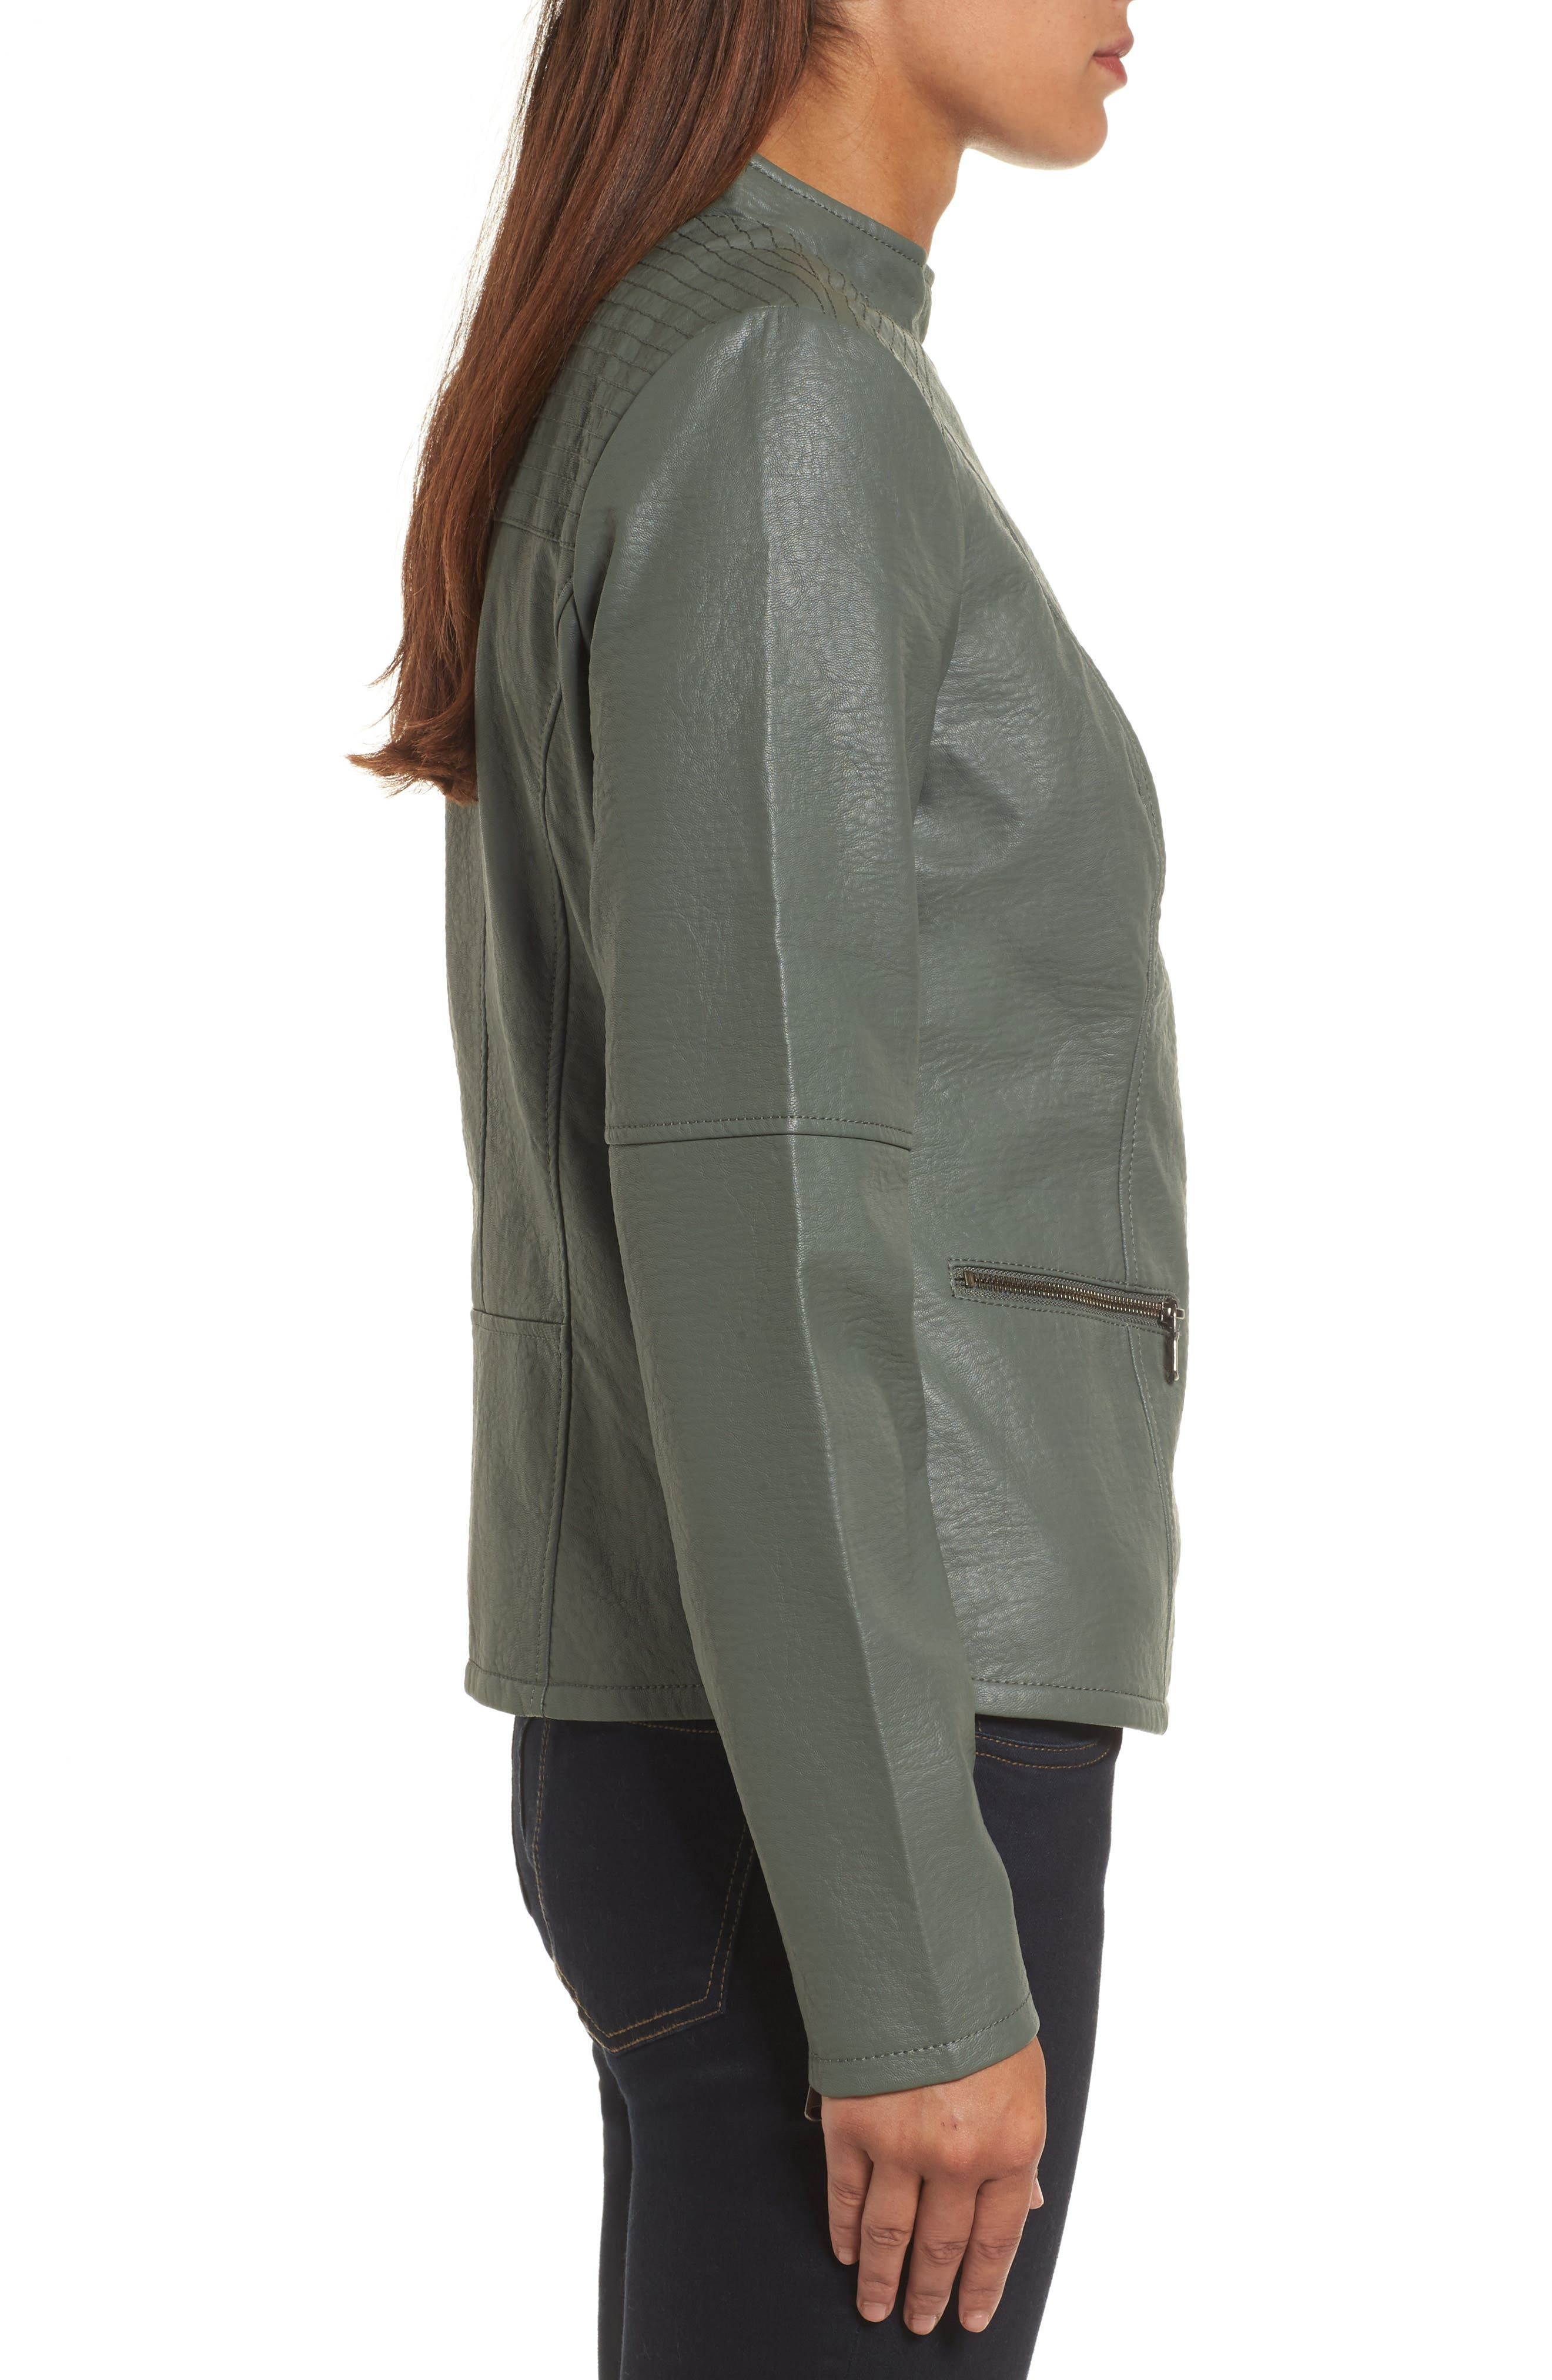 City Chic Faux Leather Jacket,                             Alternate thumbnail 3, color,                             374